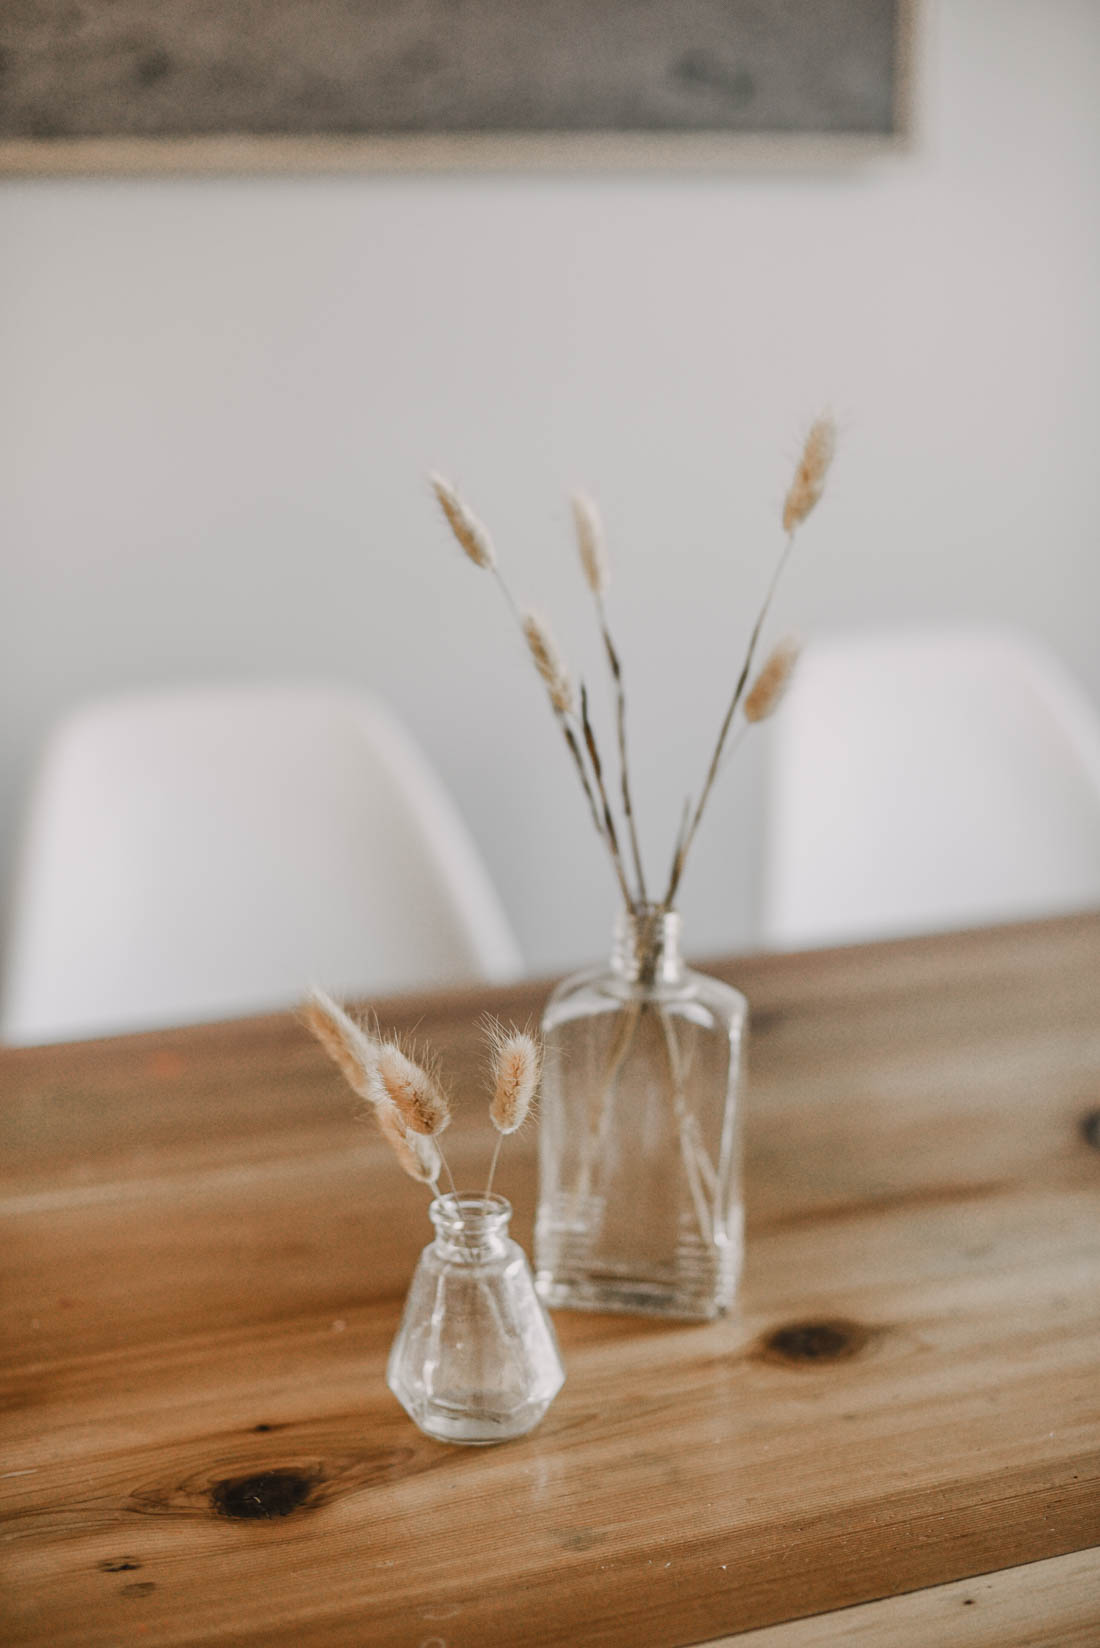 Bunny Tail Grasses for Neutral Spring Decor